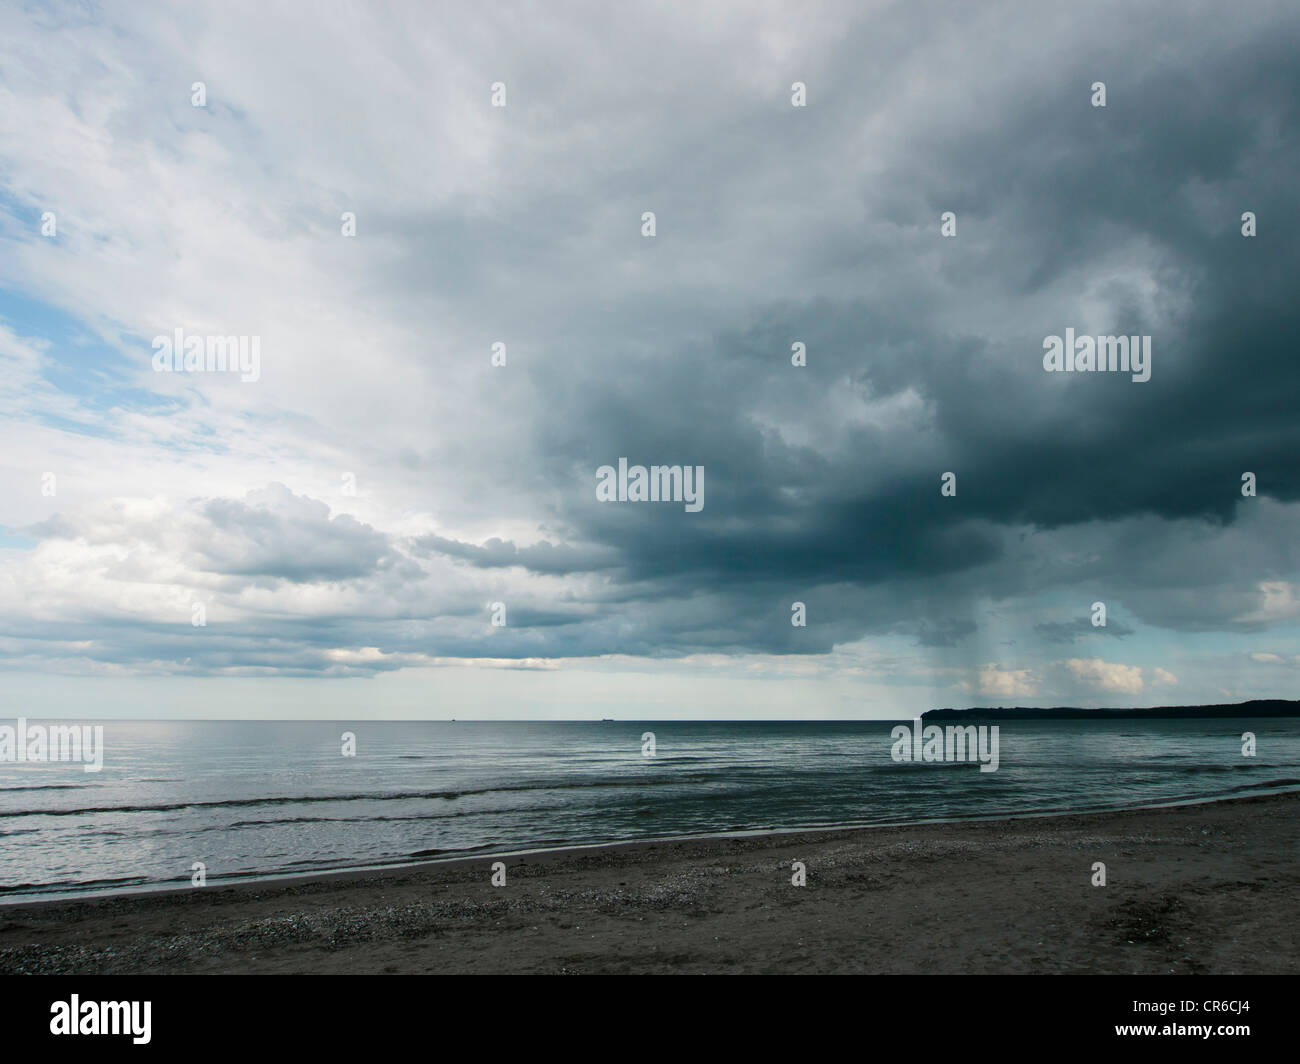 Germany, View of cloudy sky over Baltic Sea at Rugen Island - Stock Image